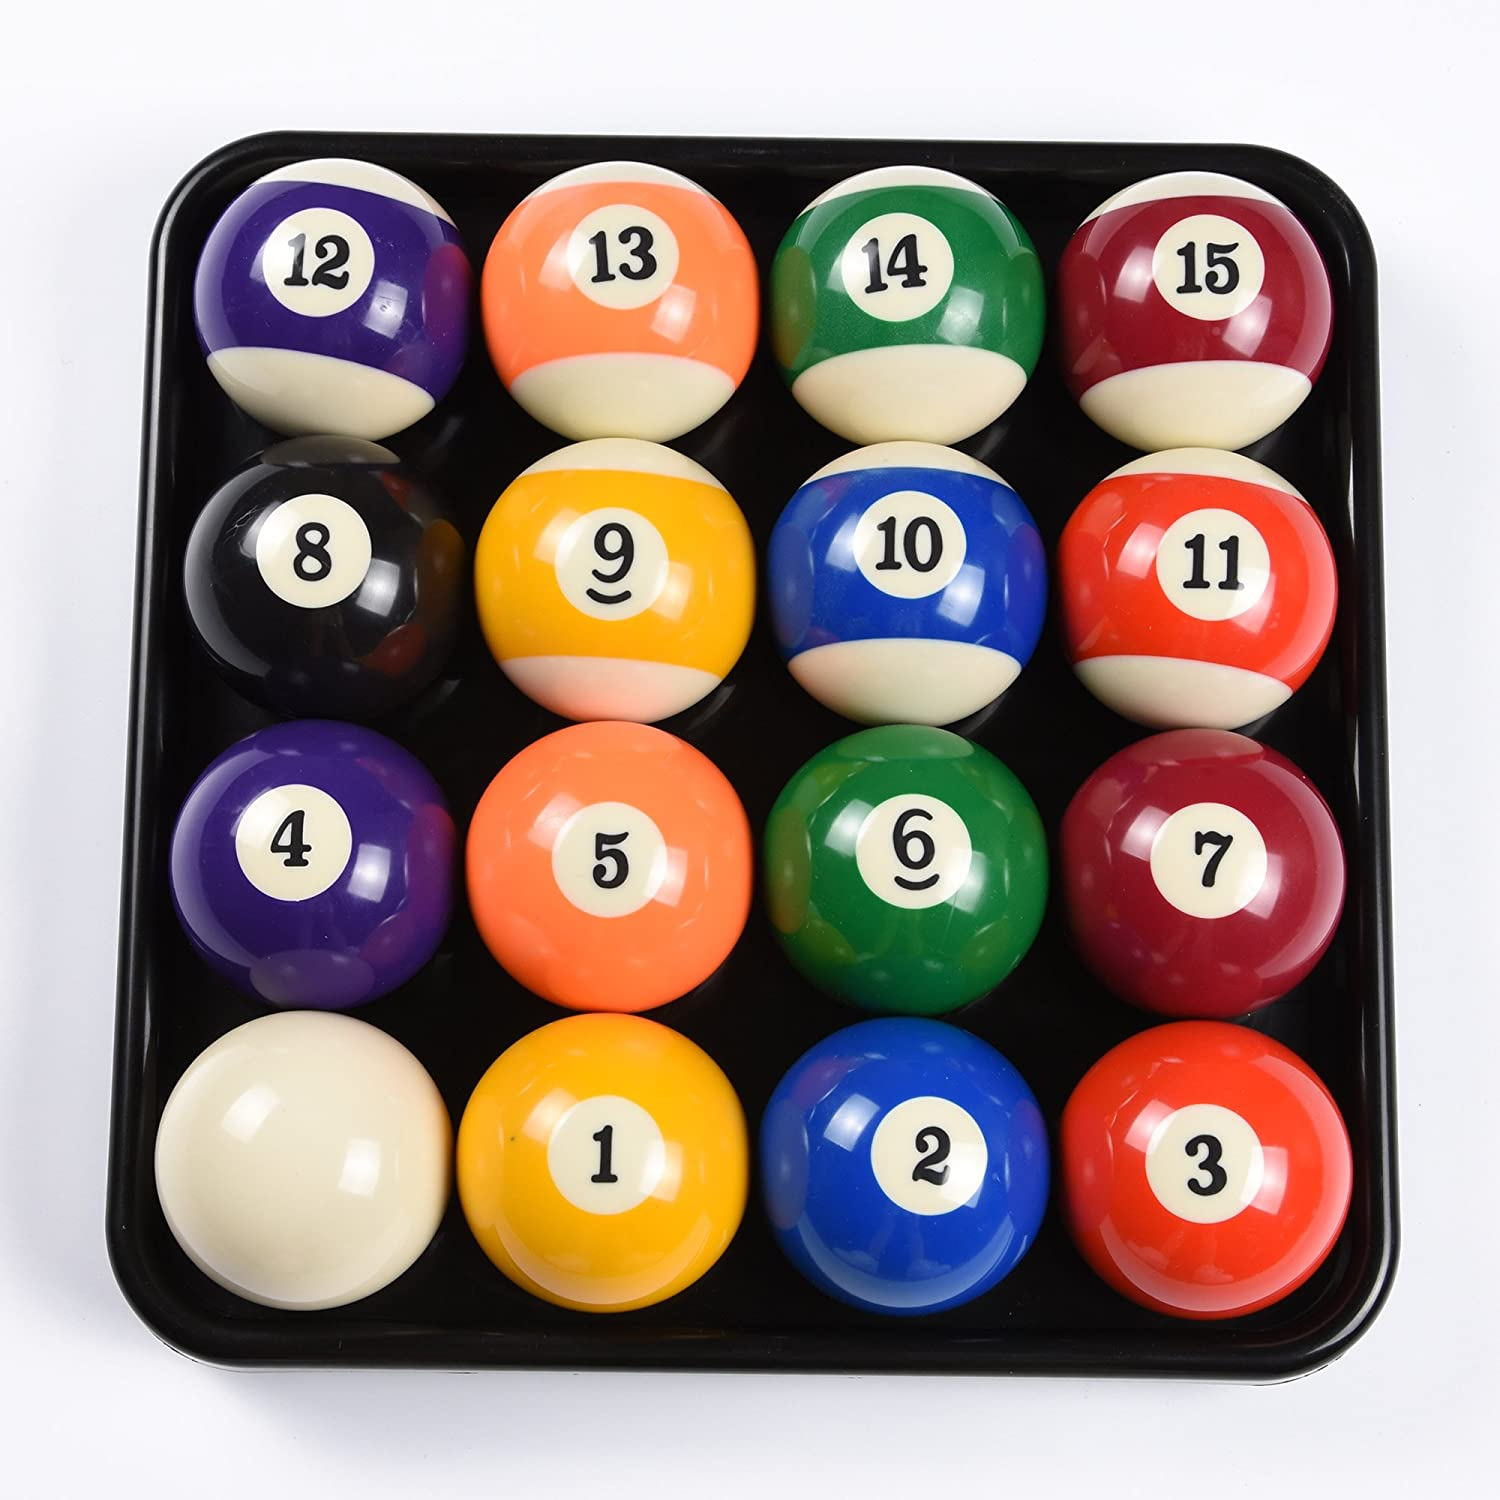 Pool & Billiards Balls | Amazon.com: Cue Balls, Billiards Balls ...